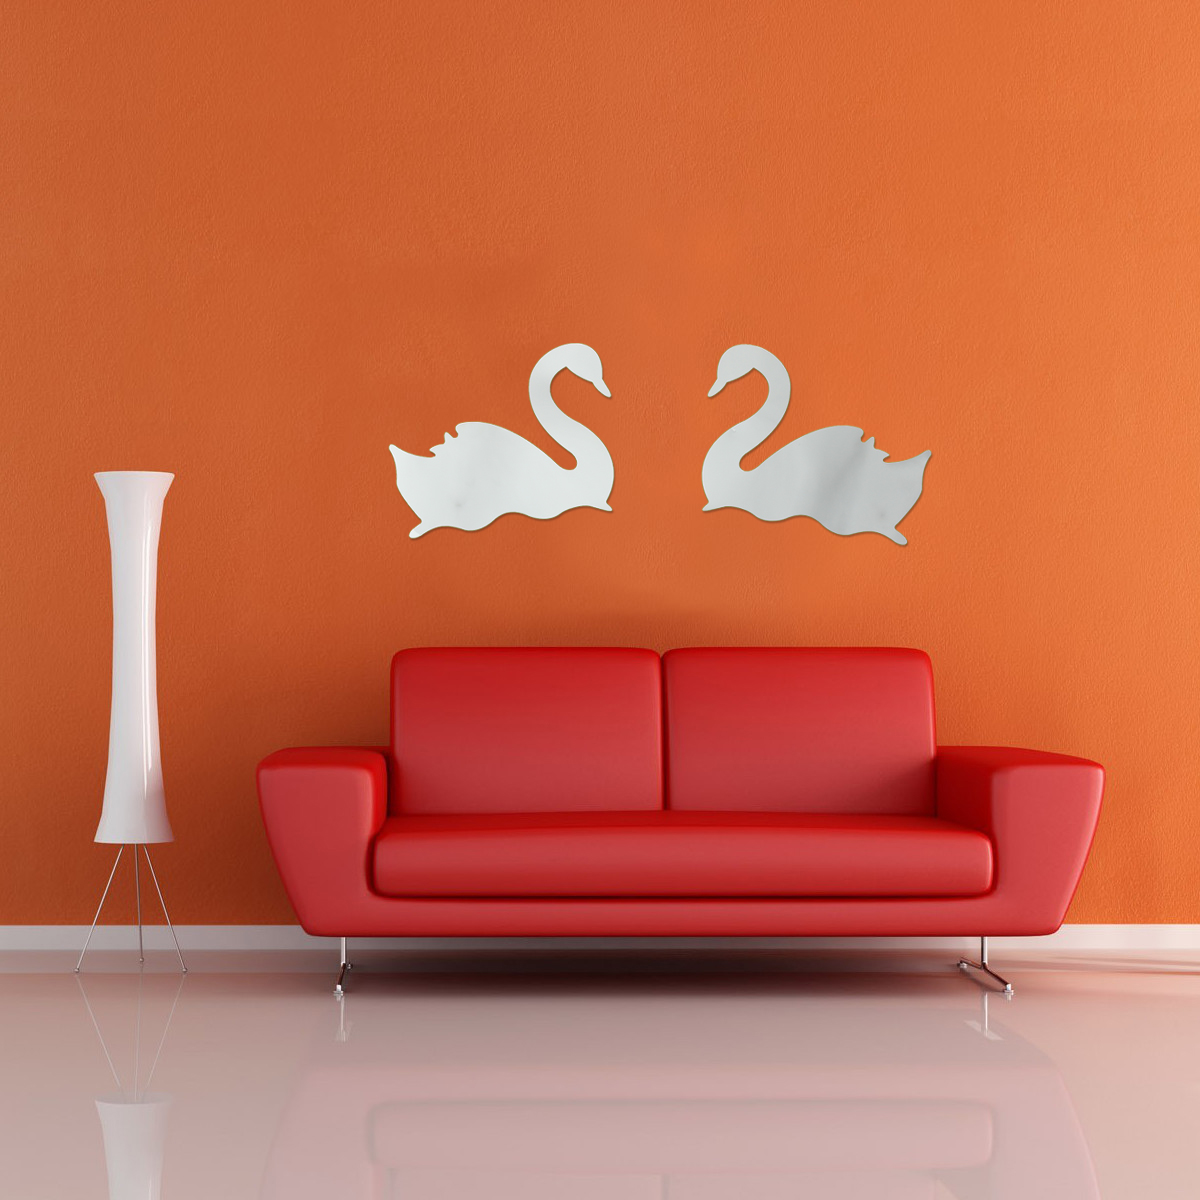 diy 2 swans in love birds mirror acrylic wall sticker home mural decal decor art ebay. Black Bedroom Furniture Sets. Home Design Ideas